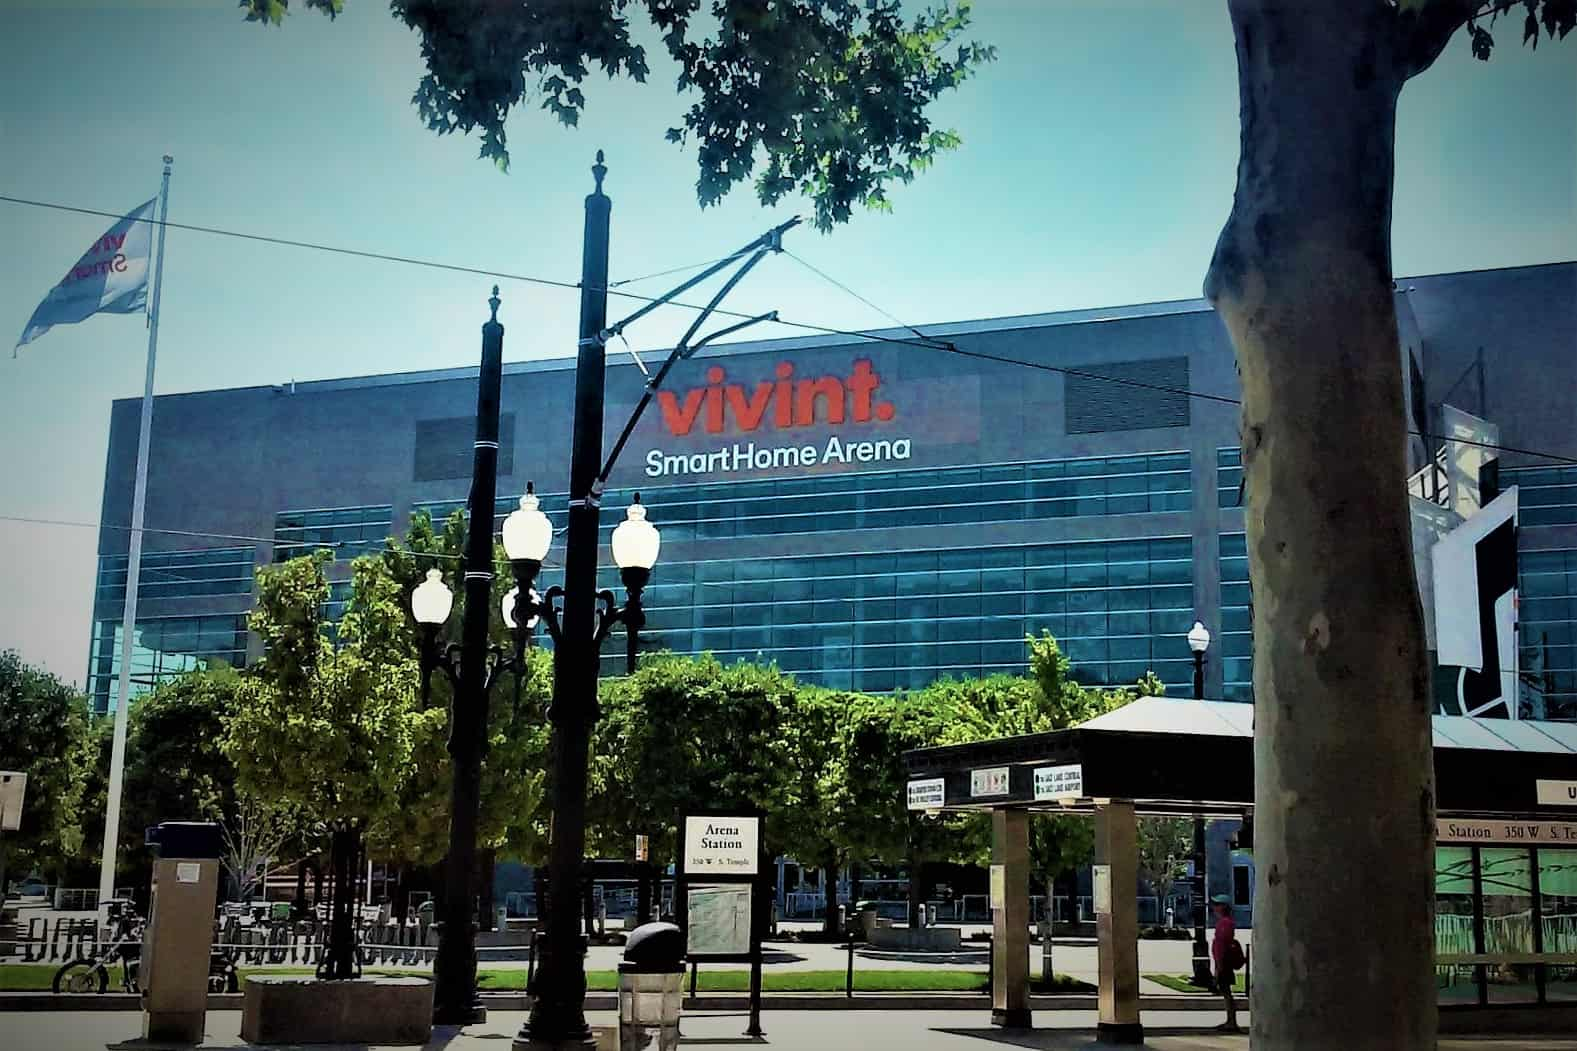 salt-lake-city-vivint-smart-home-arena